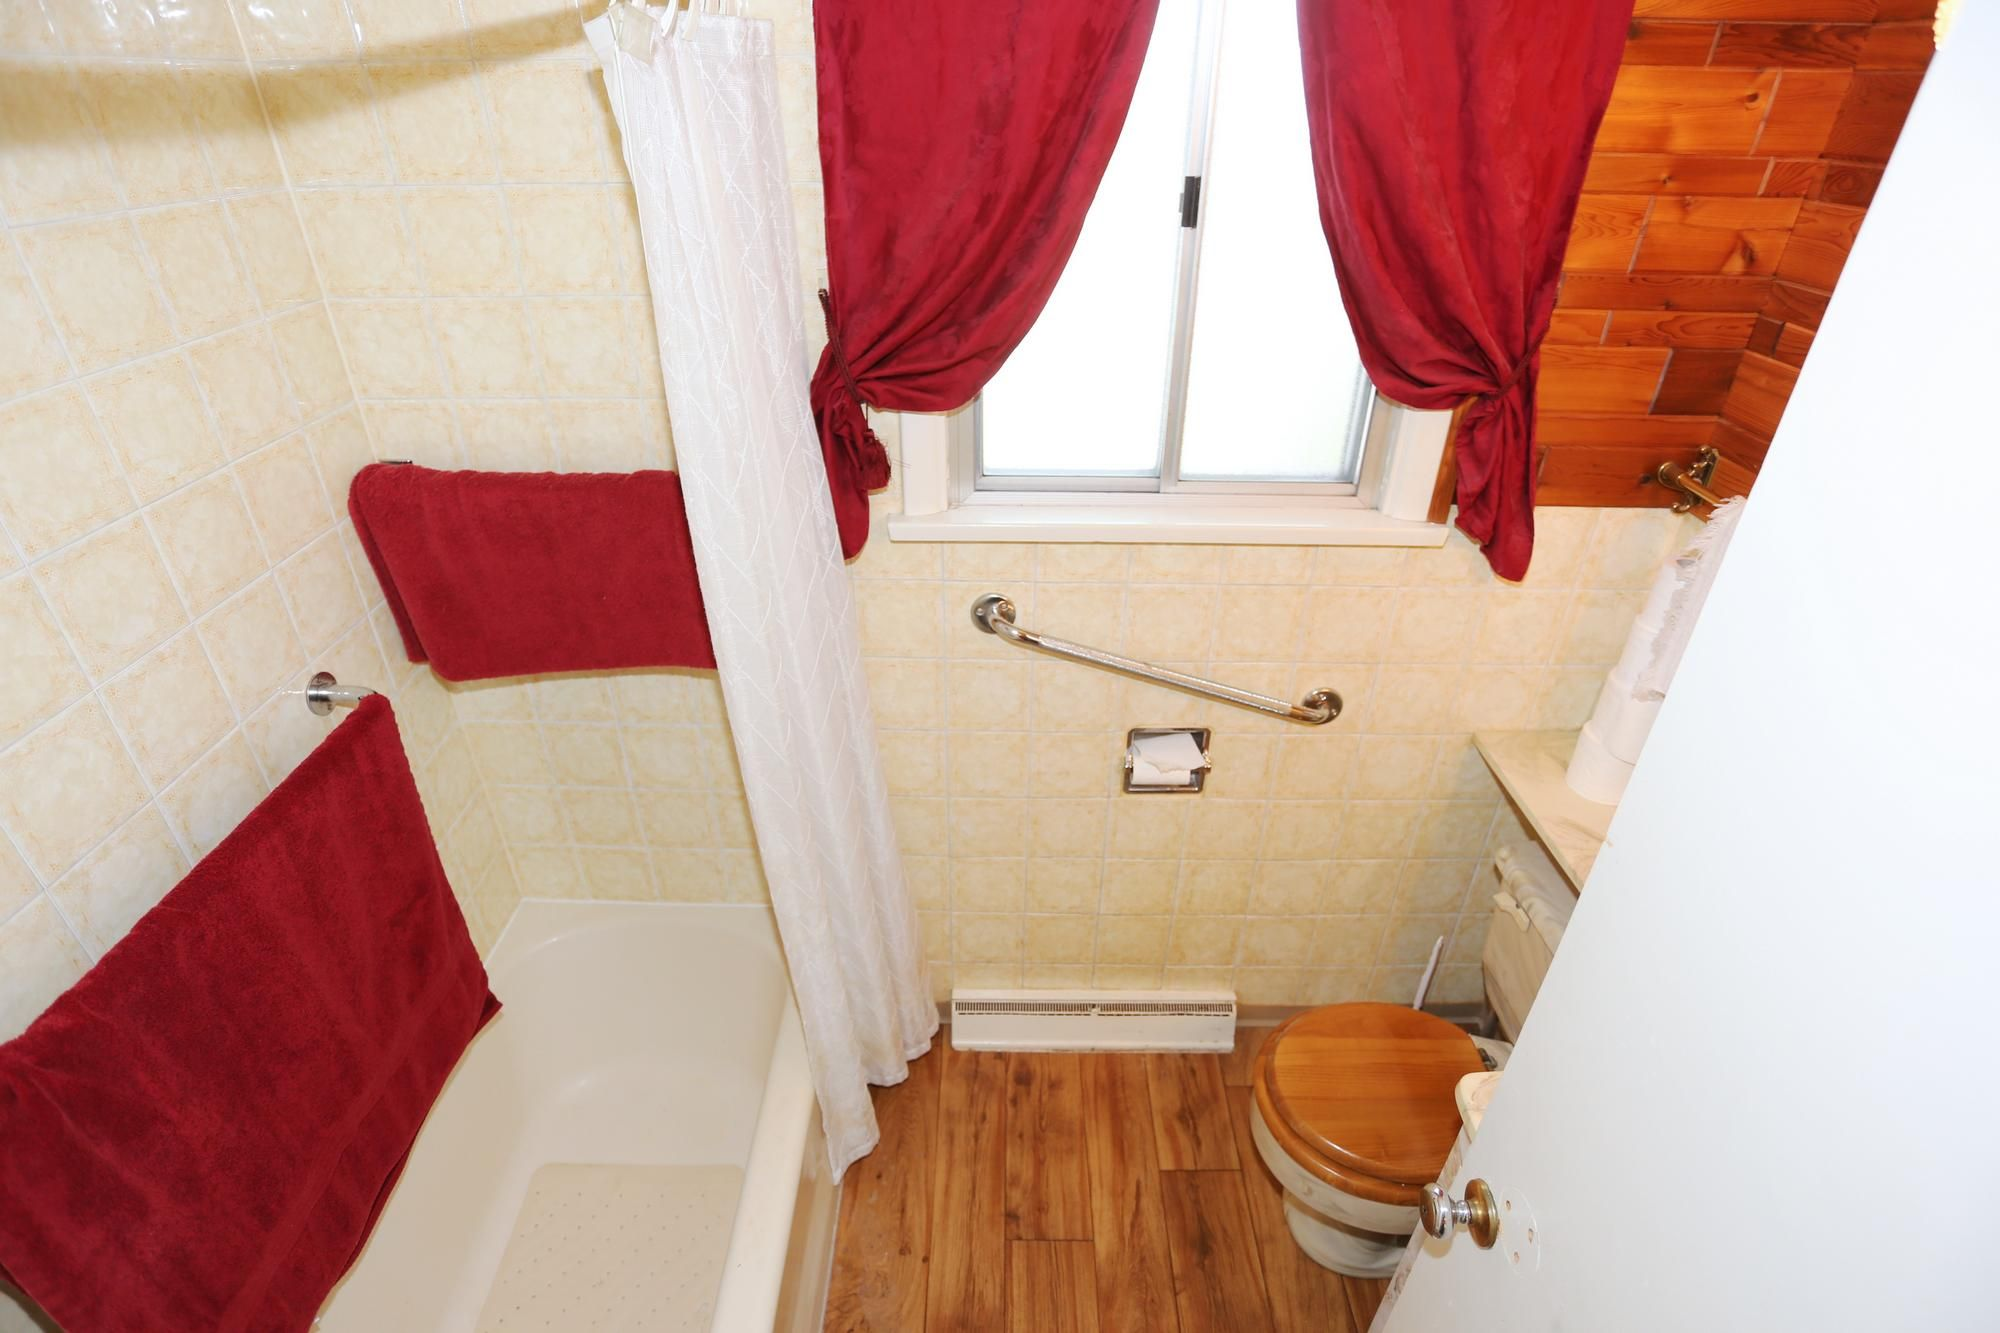 Photo 14: Photos: 1320 Valour Road in Winnipeg: West End Single Family Detached for sale (5C)  : MLS®# 1816744